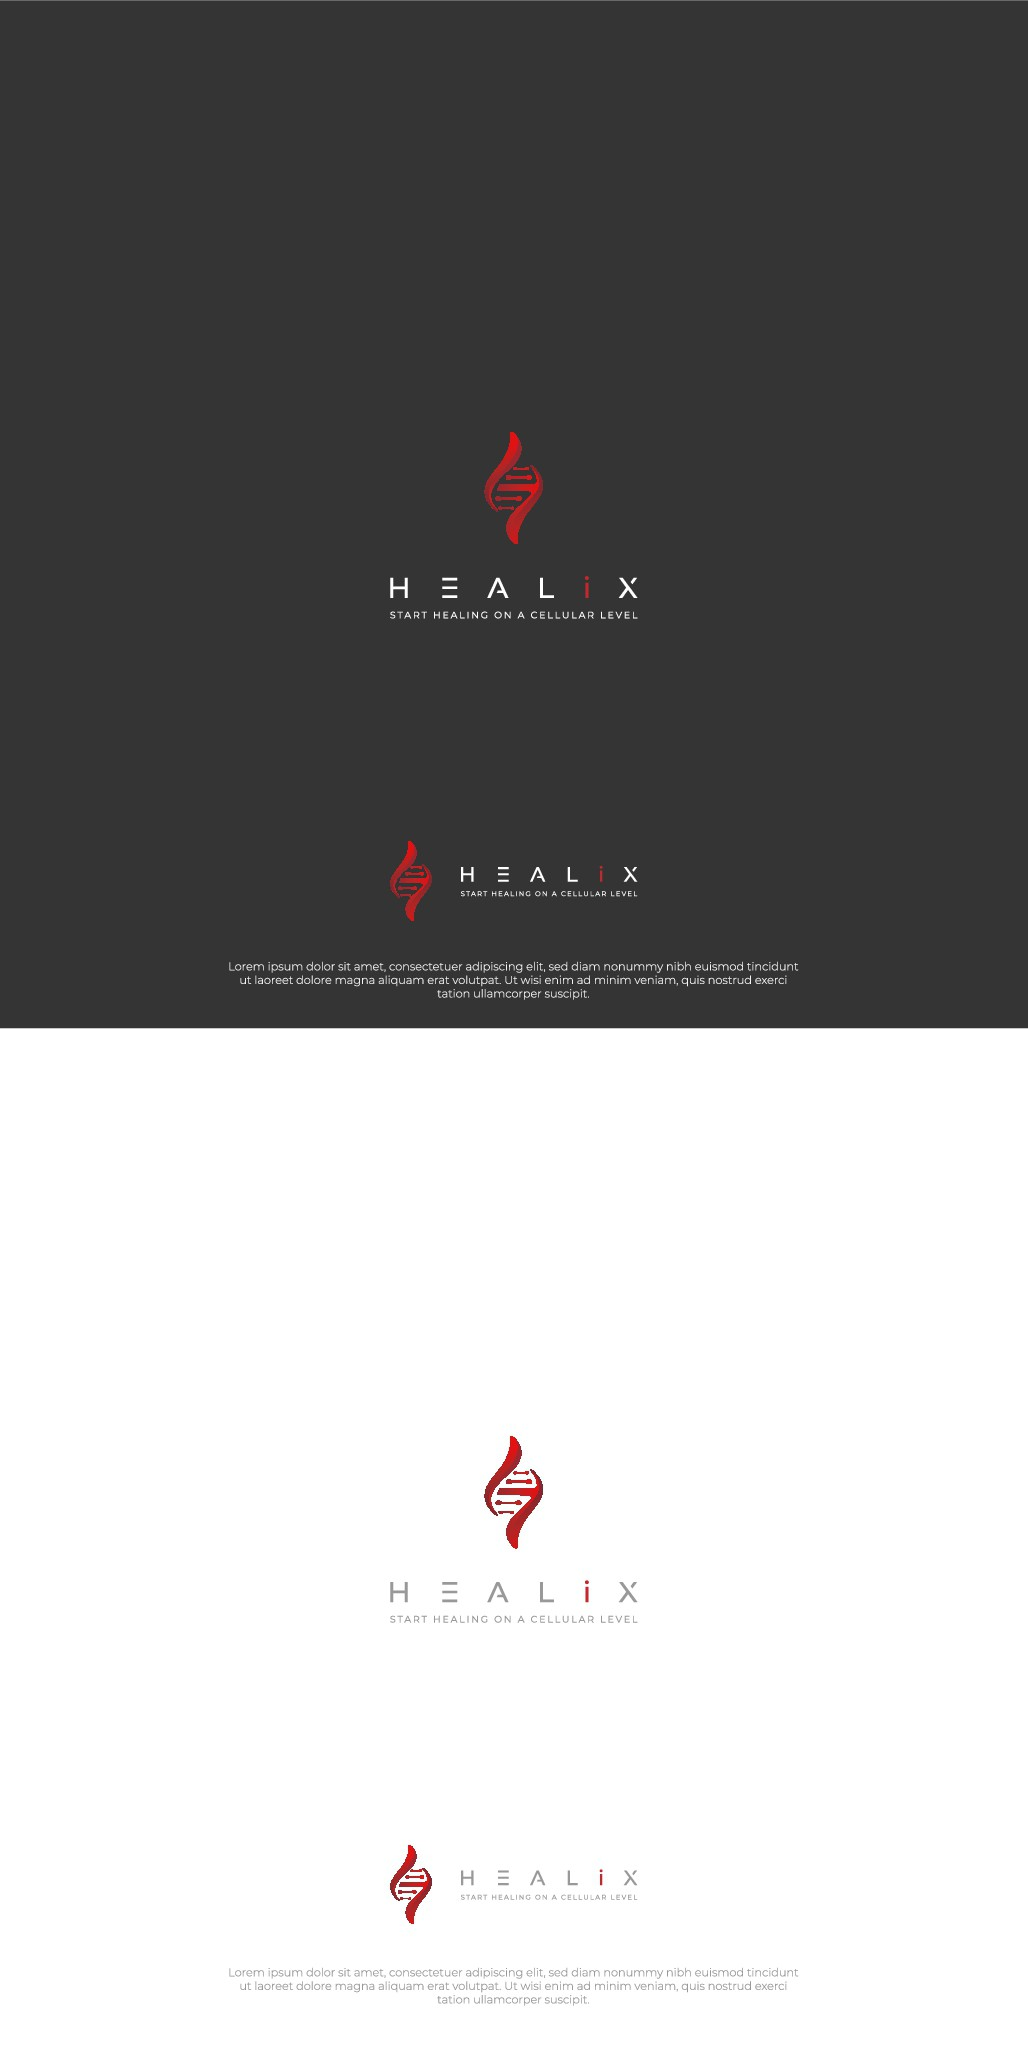 Design a clean logo for new brand in health & wellness industry - Future opportunities for winner